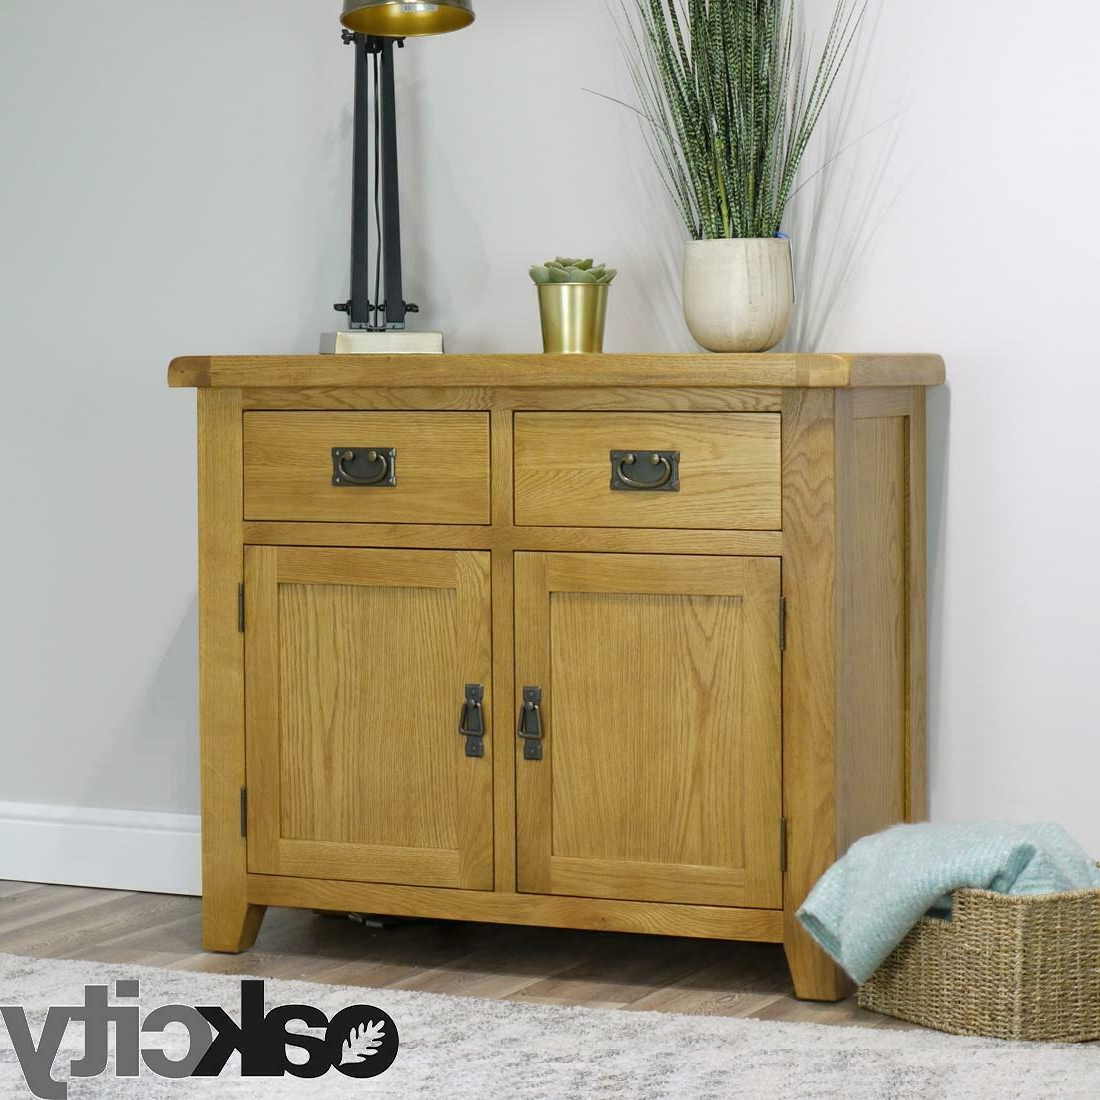 Norton Sideboards Intended For Most Popular Arklow Oak Small Sideboard / Fully Assembled 2 Door 2 Drawer Dining Room  Storage (View 9 of 20)